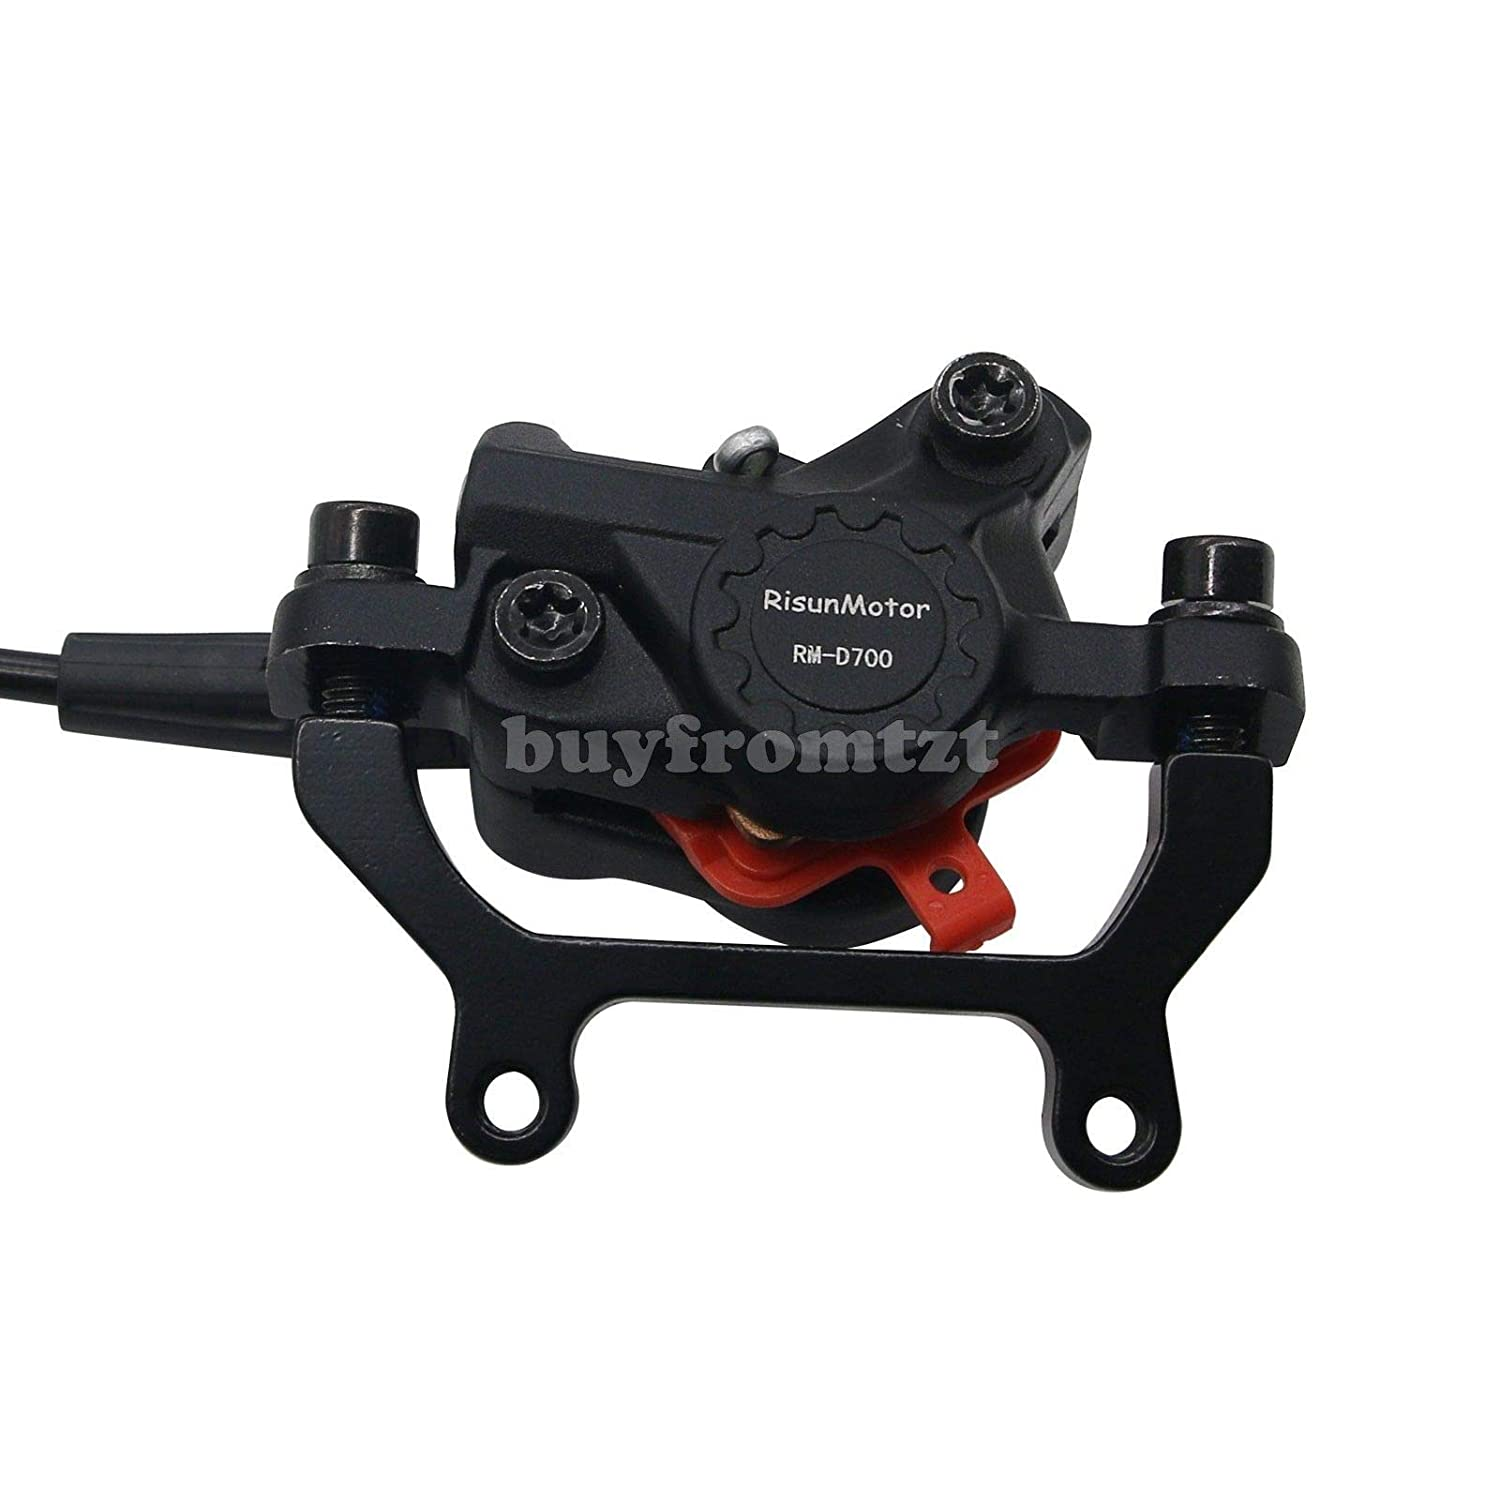 RM-D700 Hydraulic Disc Brake Front /& Rear for BAFANG Mid-Drive Motor Conversion